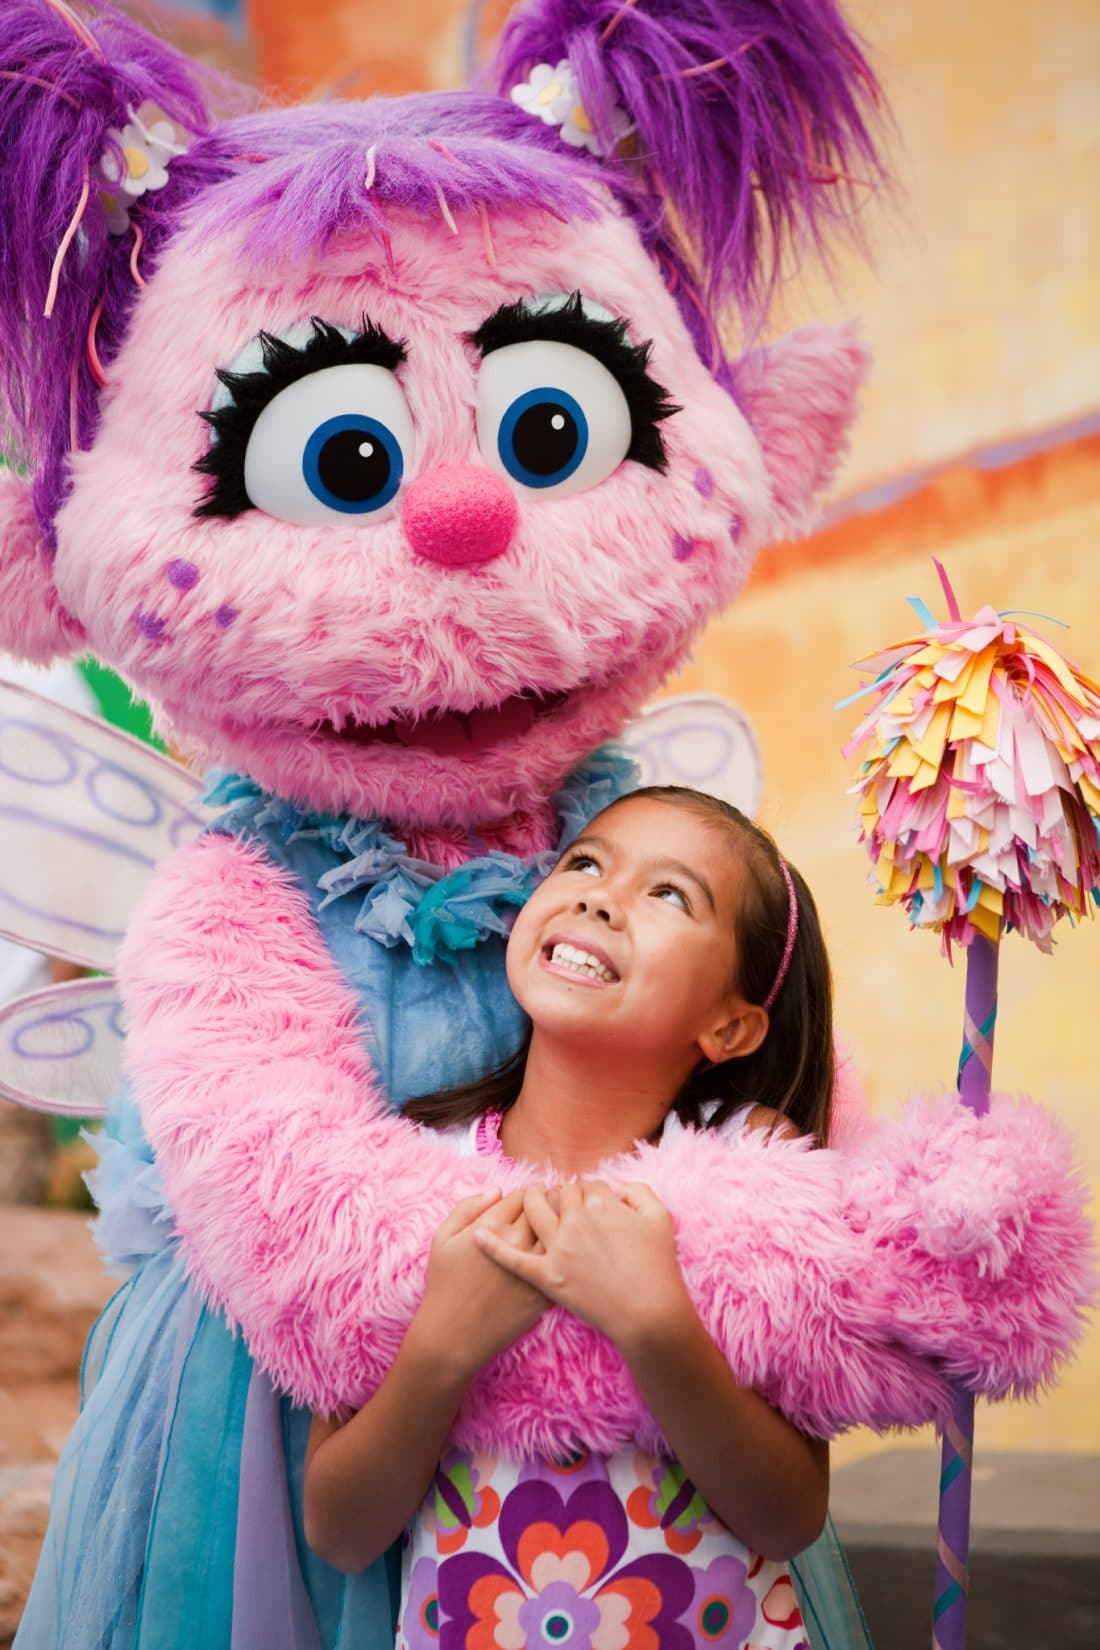 Every weekend from April 13 through May 20, join Elmo, Cookie Monster, Abby Cadabby and everyone's favorite furry friends for fun atSesame Street® Kids' Weekends.